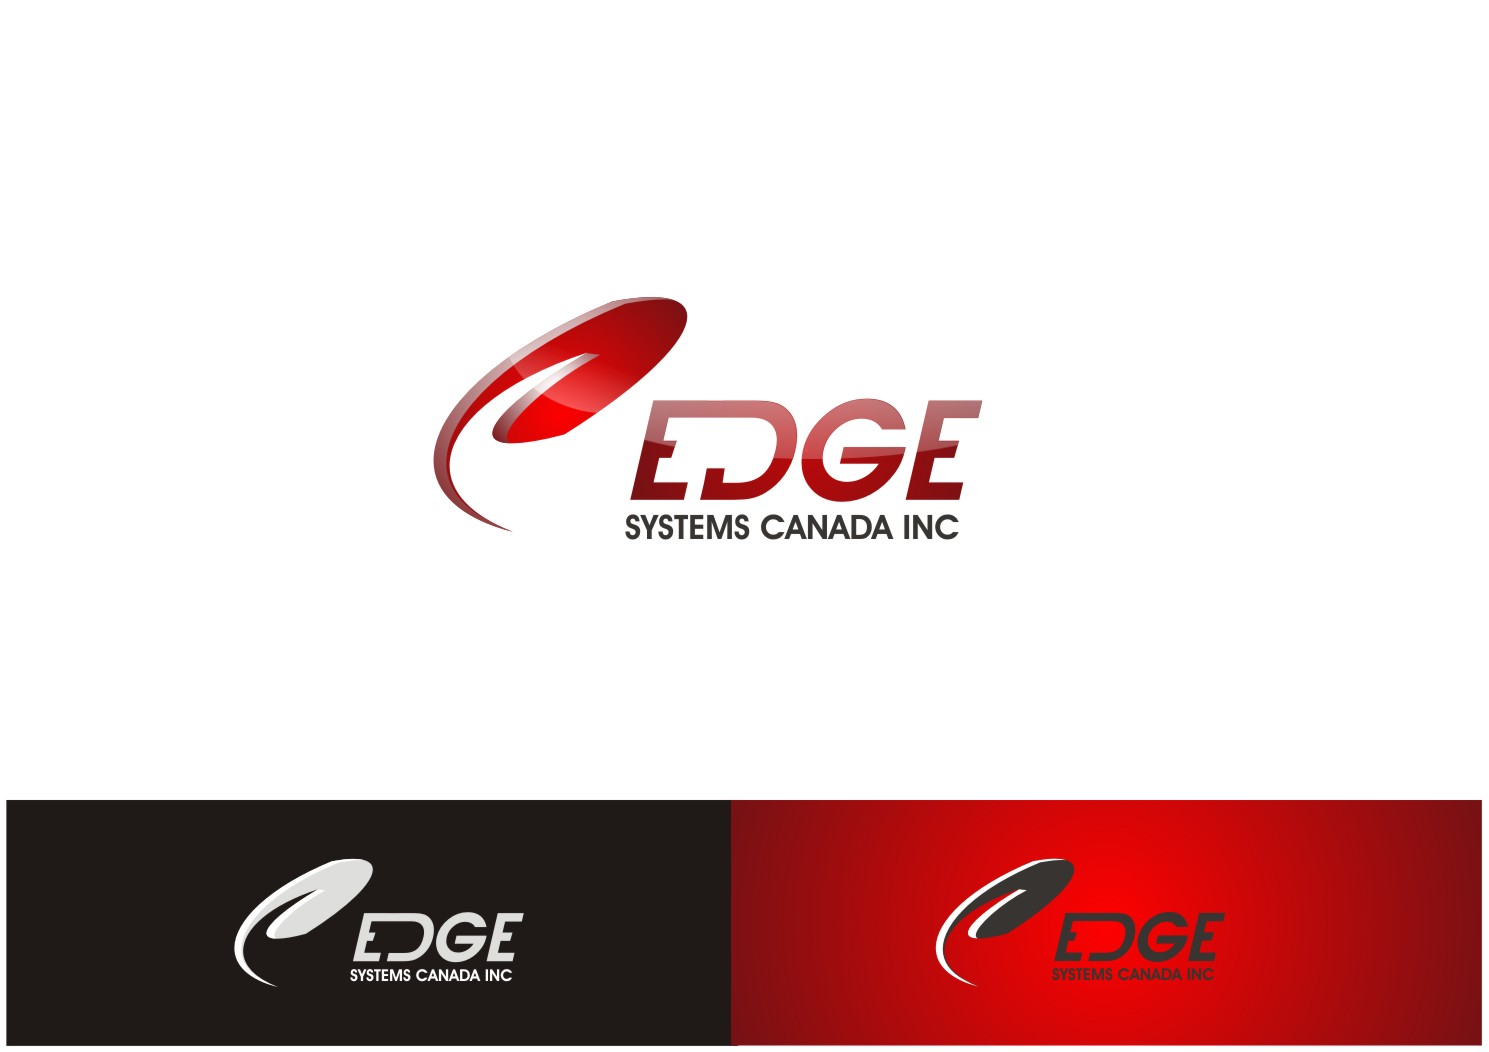 Logo Design by yanxsant - Entry No. 15 in the Logo Design Contest New Logo Design for Edge Systems Canada Inc.